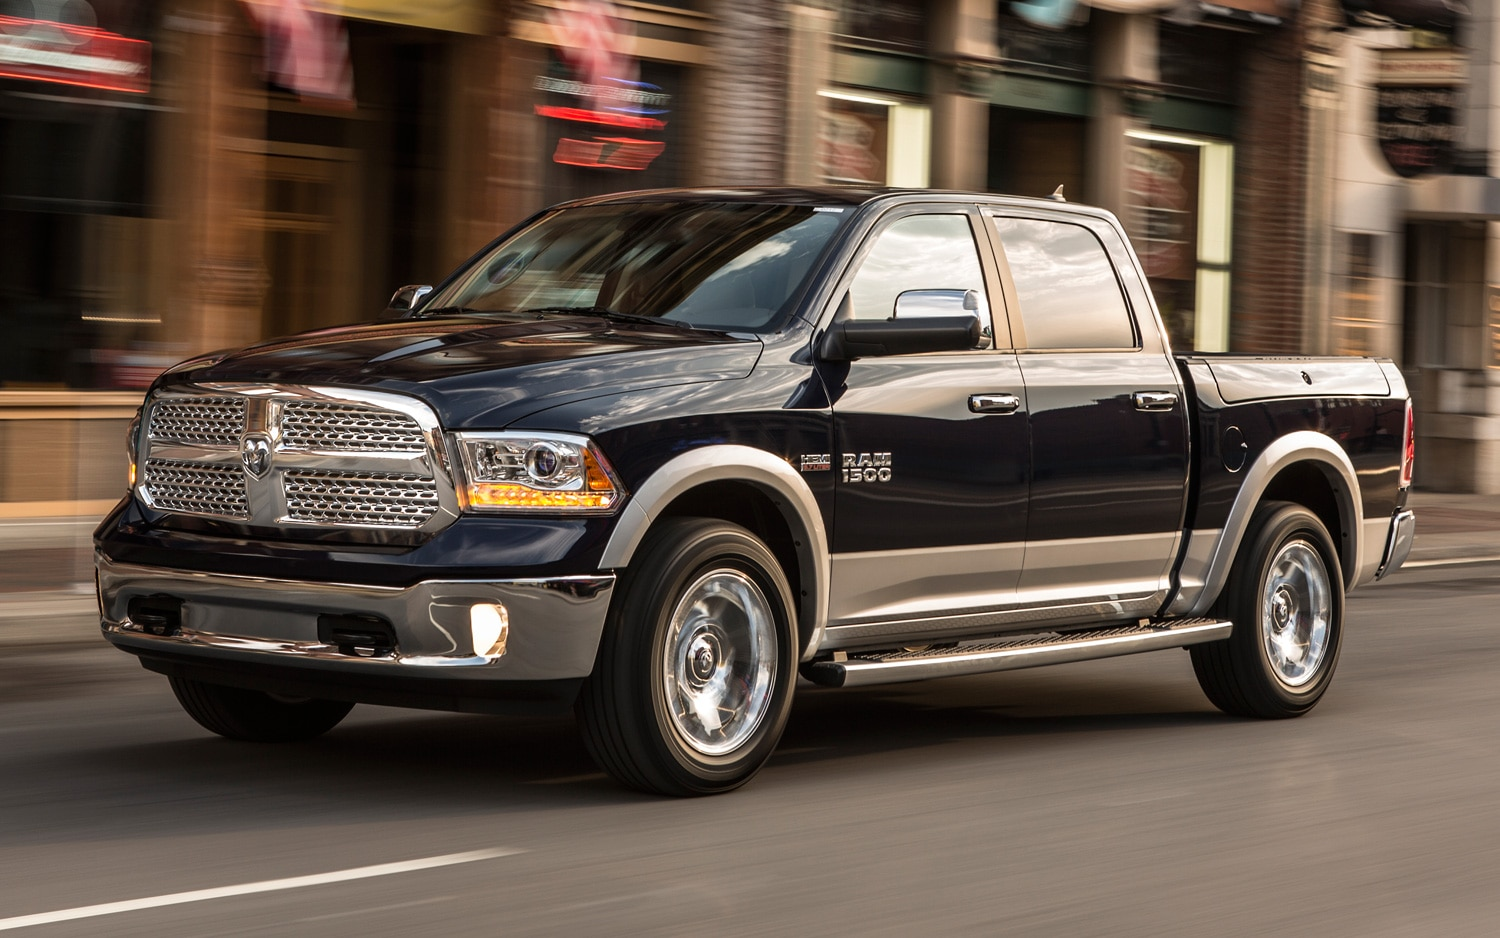 2013 Ram 1500 Front Three Quarters View In Motion1